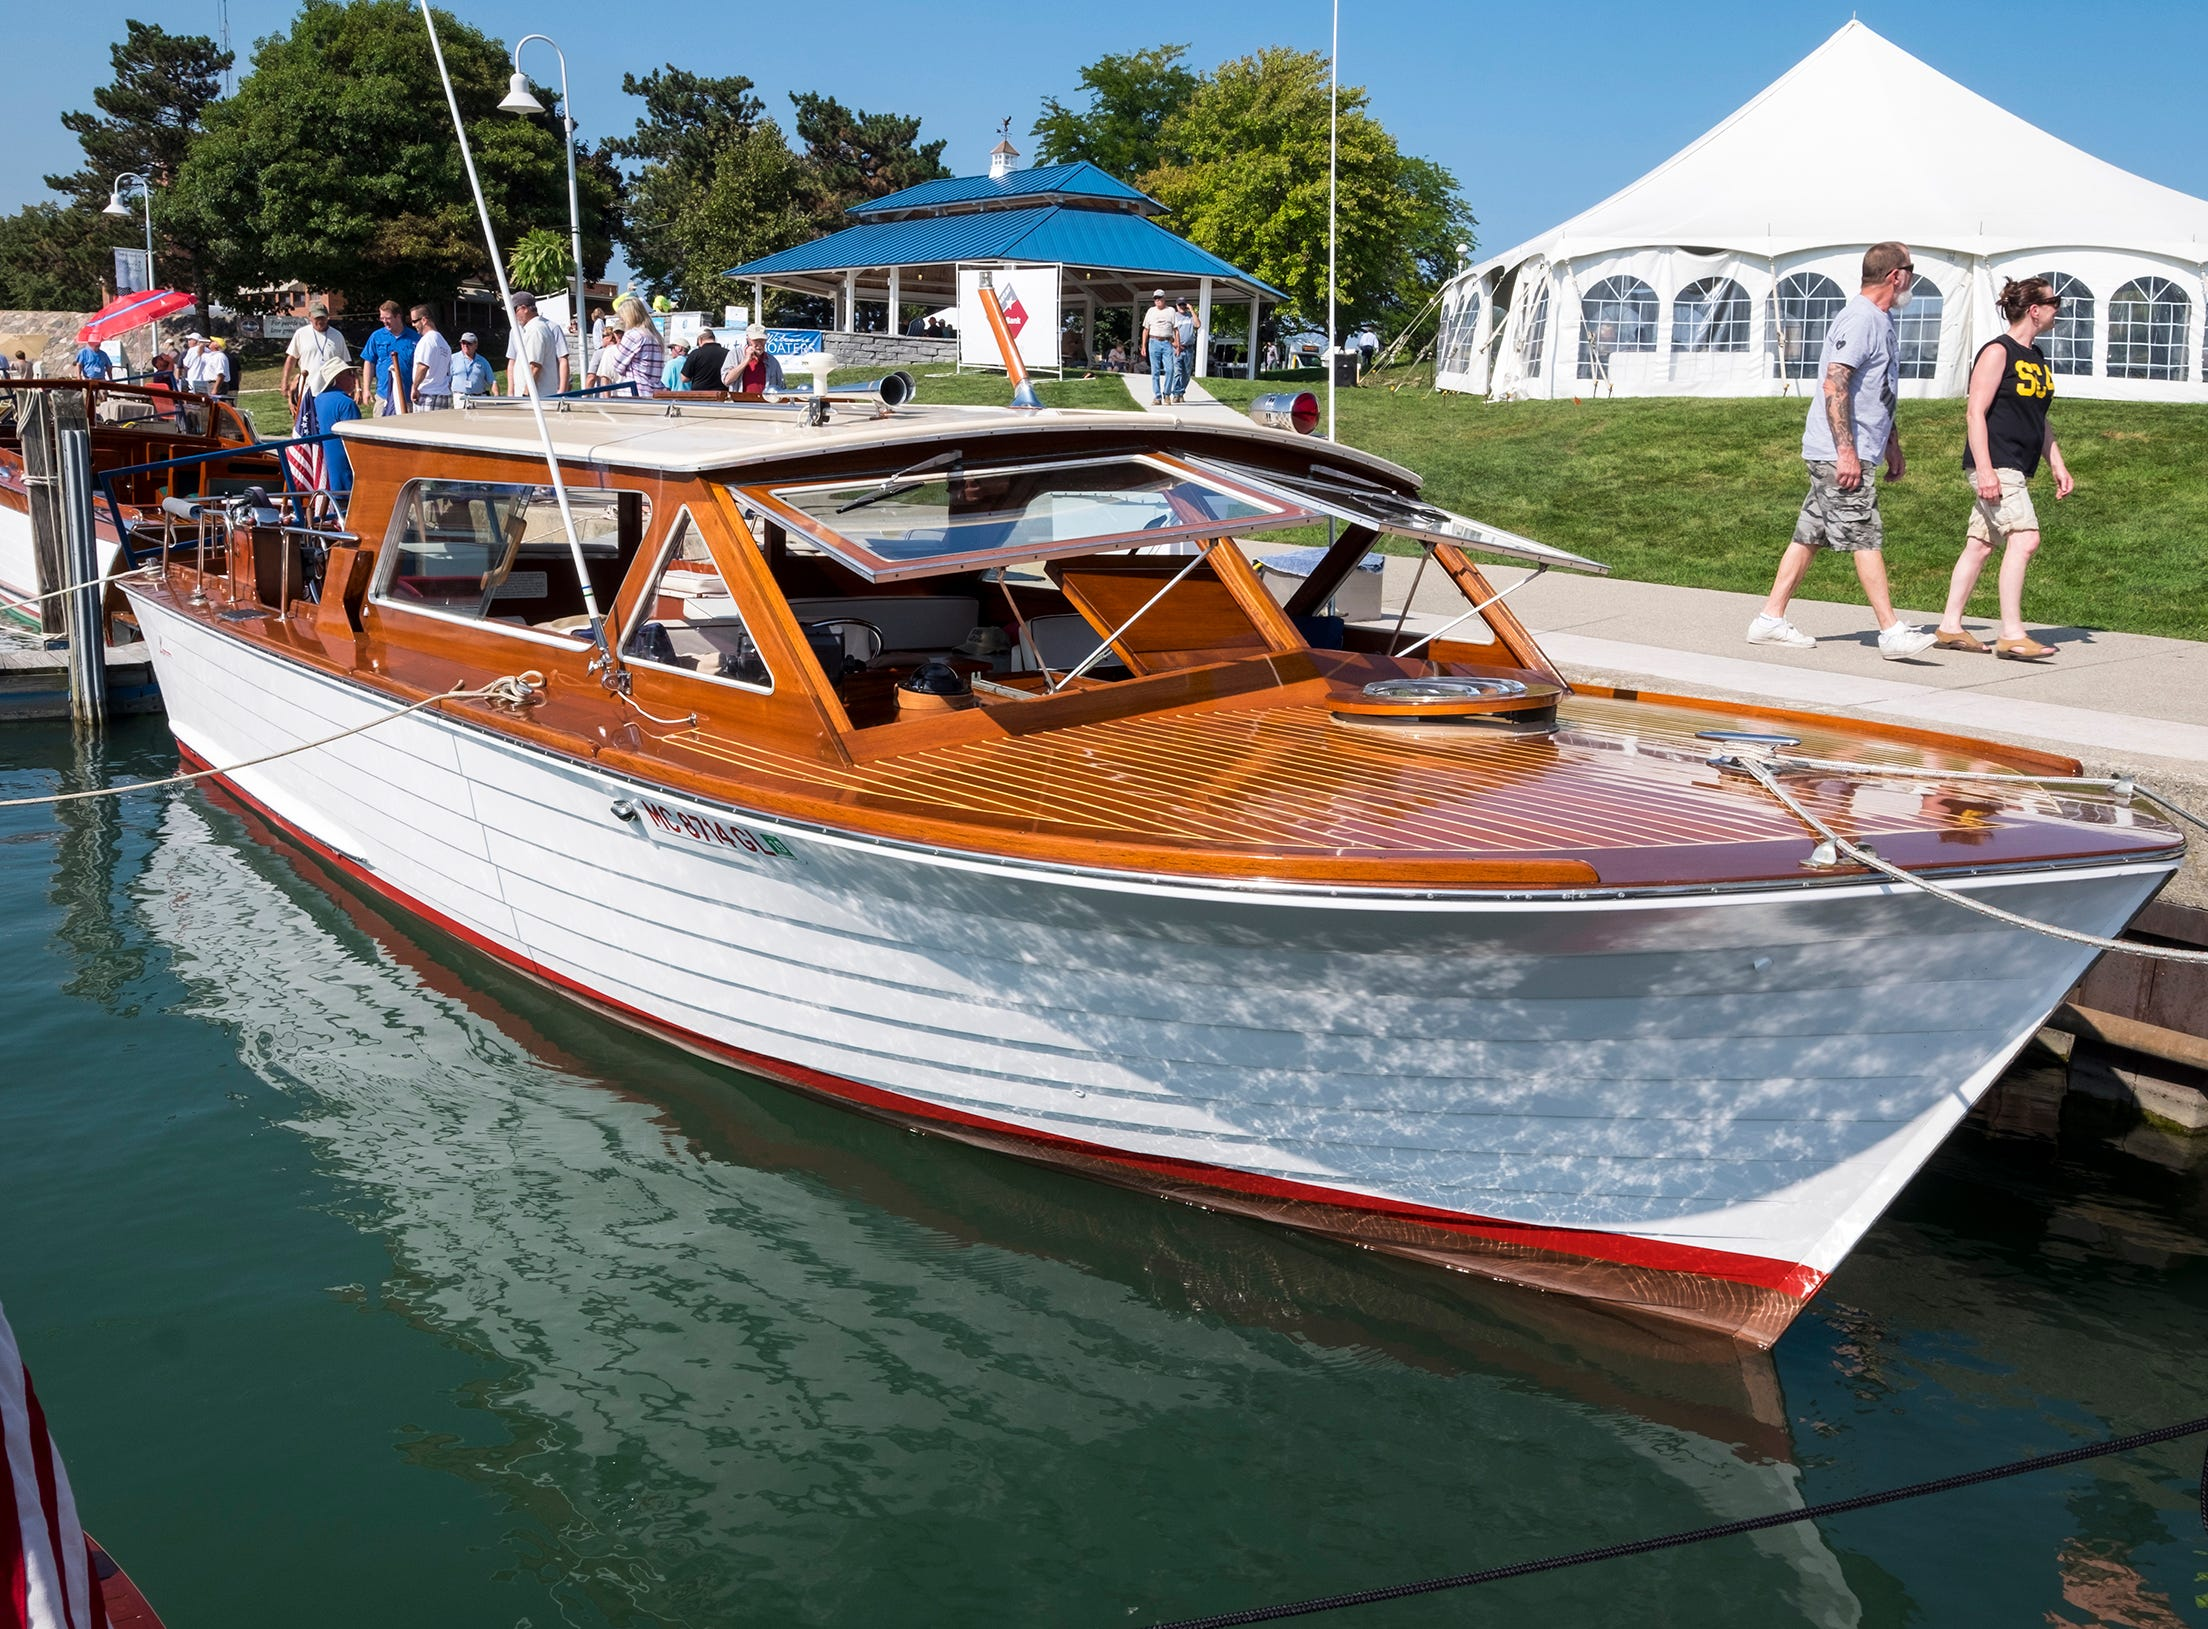 1968 Lyman Islander 30'The Frequent Flyer, a 1968 Lyman Islander, is docked Friday, Sept. 14, 2018, at River Street Marina during the 2018 ACBS International Boat Show.